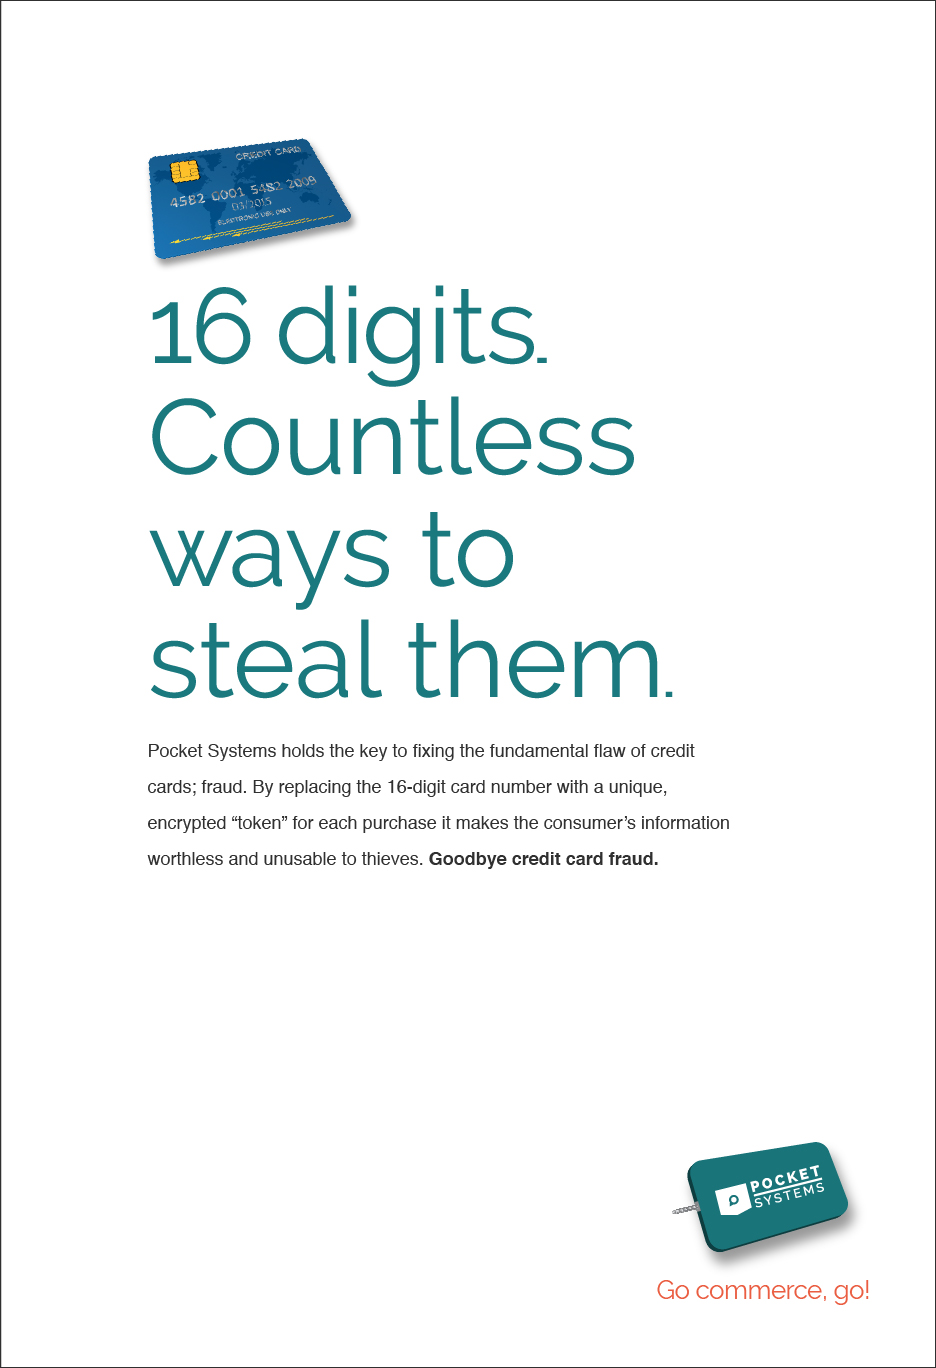 Print Ad for pocket systems - a new, secure way to pay that replaces the credit card.